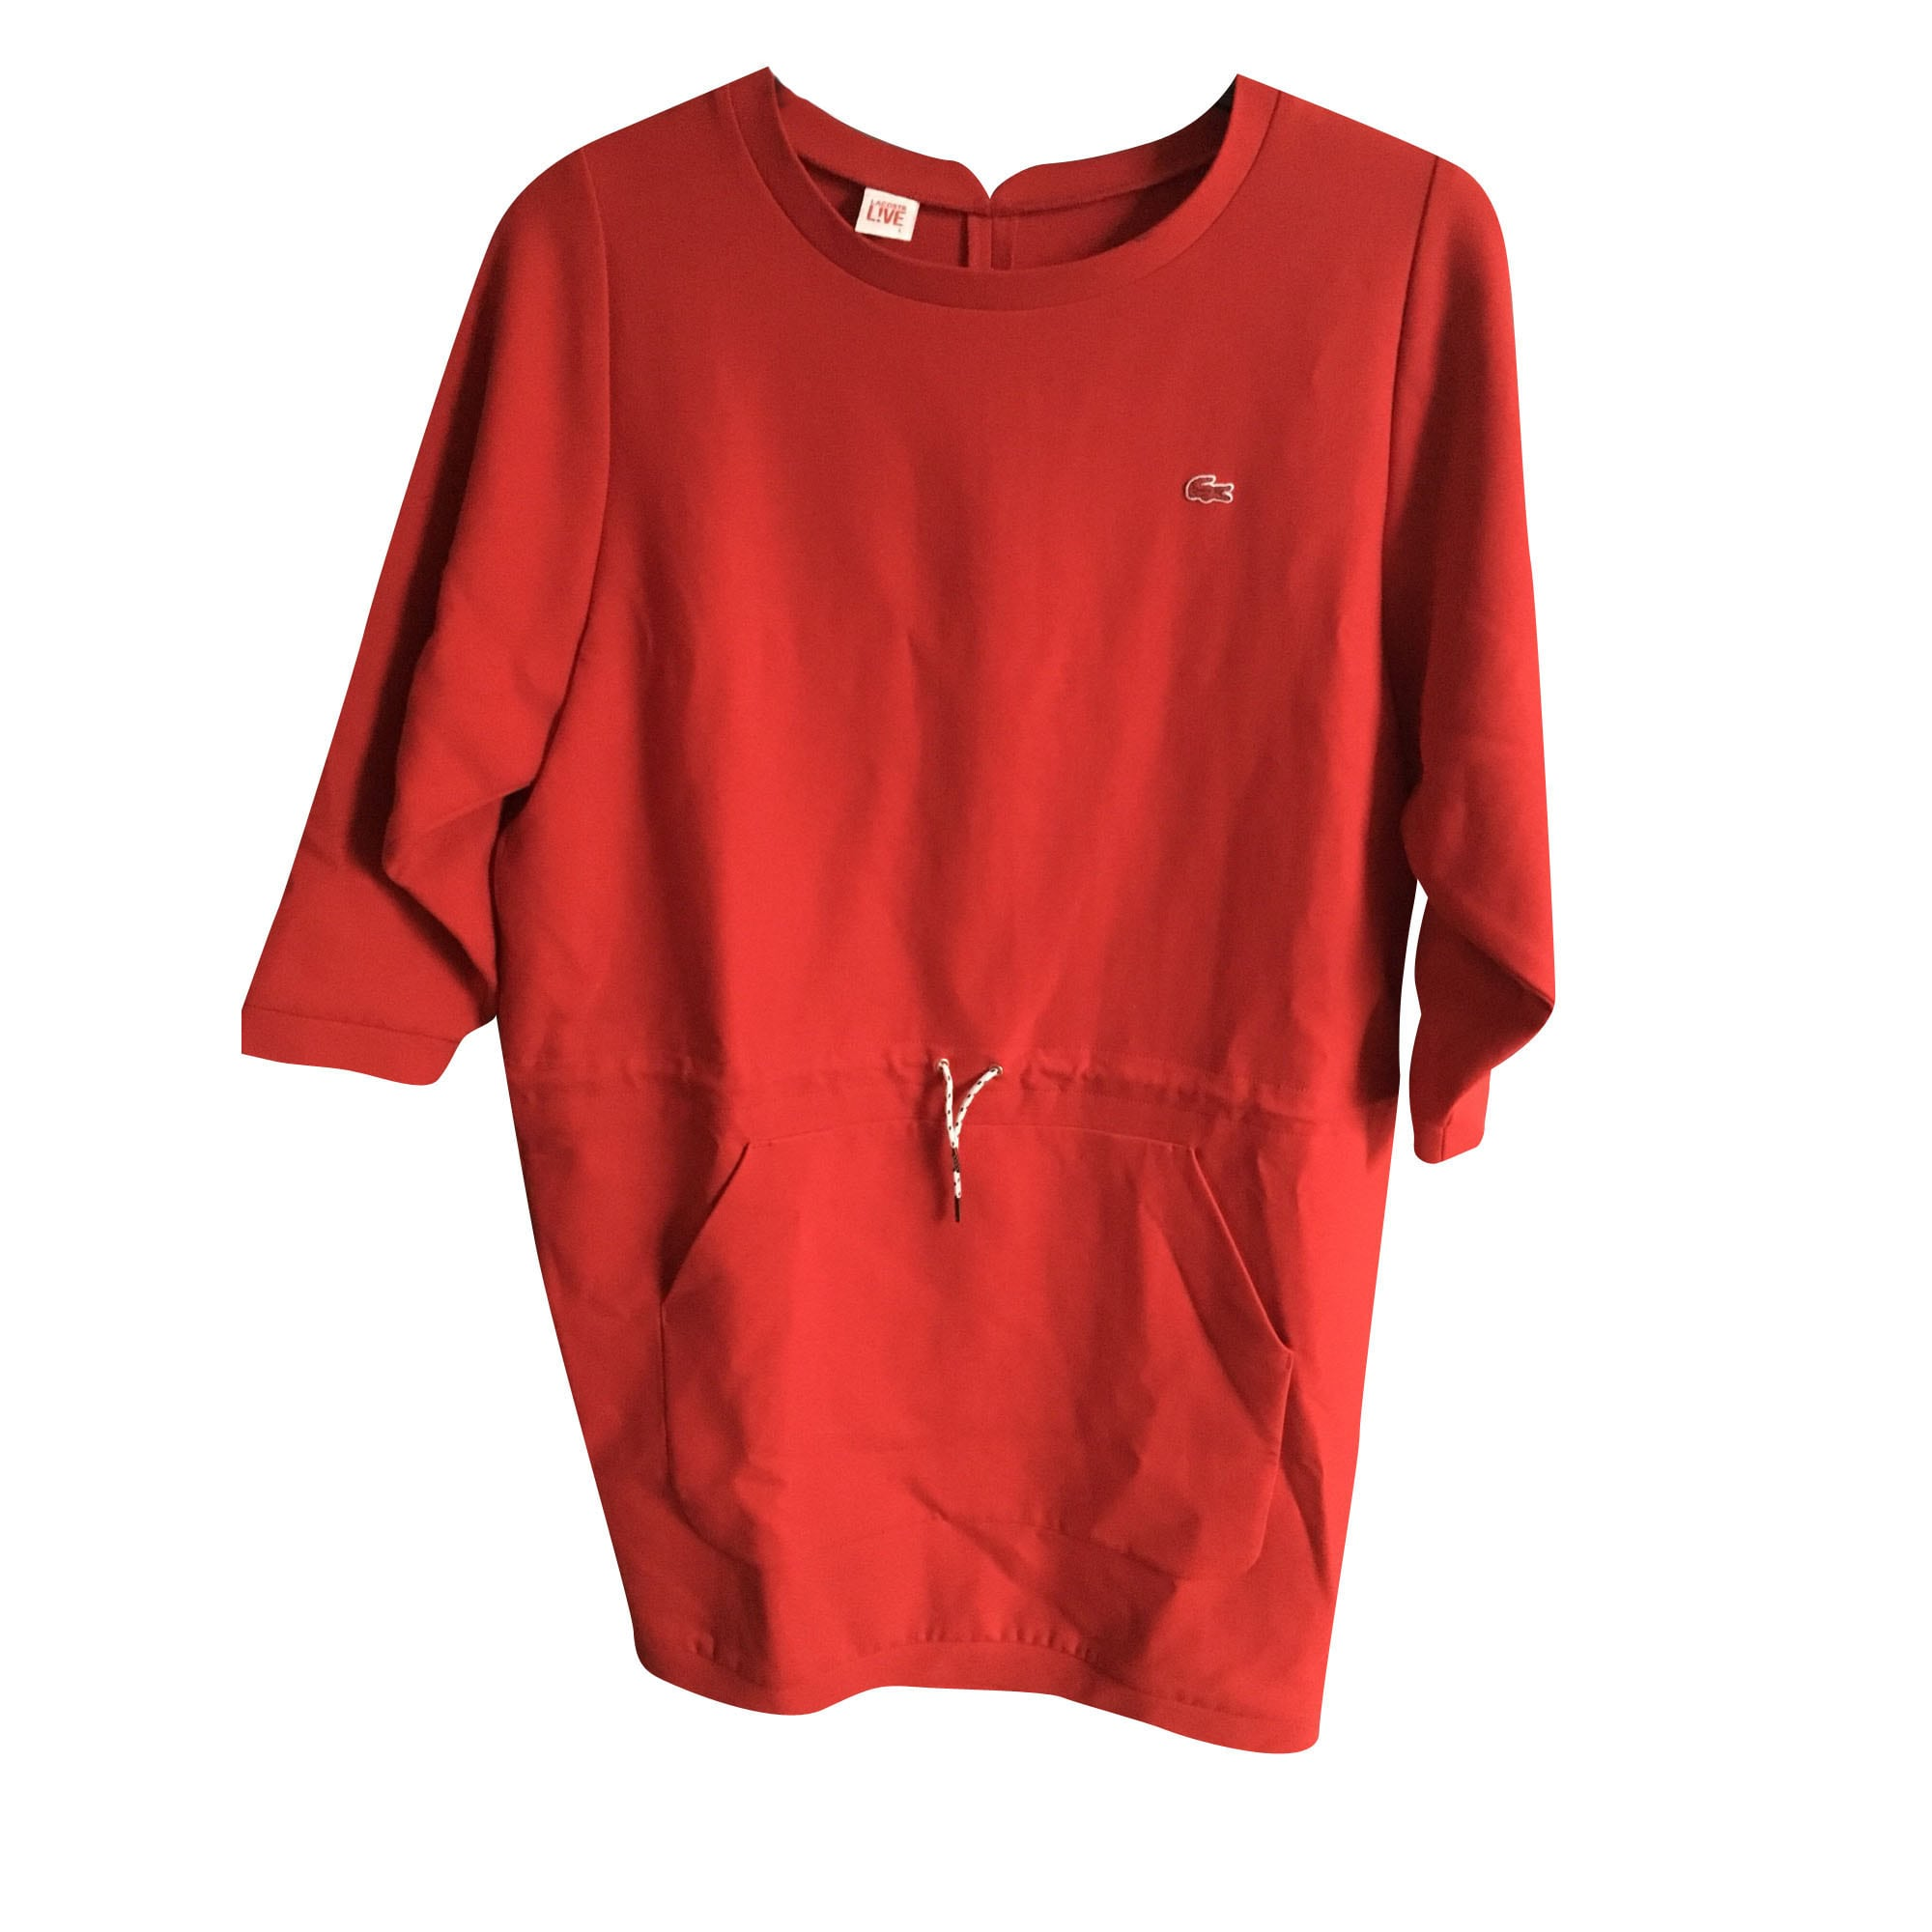 42fa48b0d8 Robe pull LACOSTE 40 (L, T3) rouge - 7382688